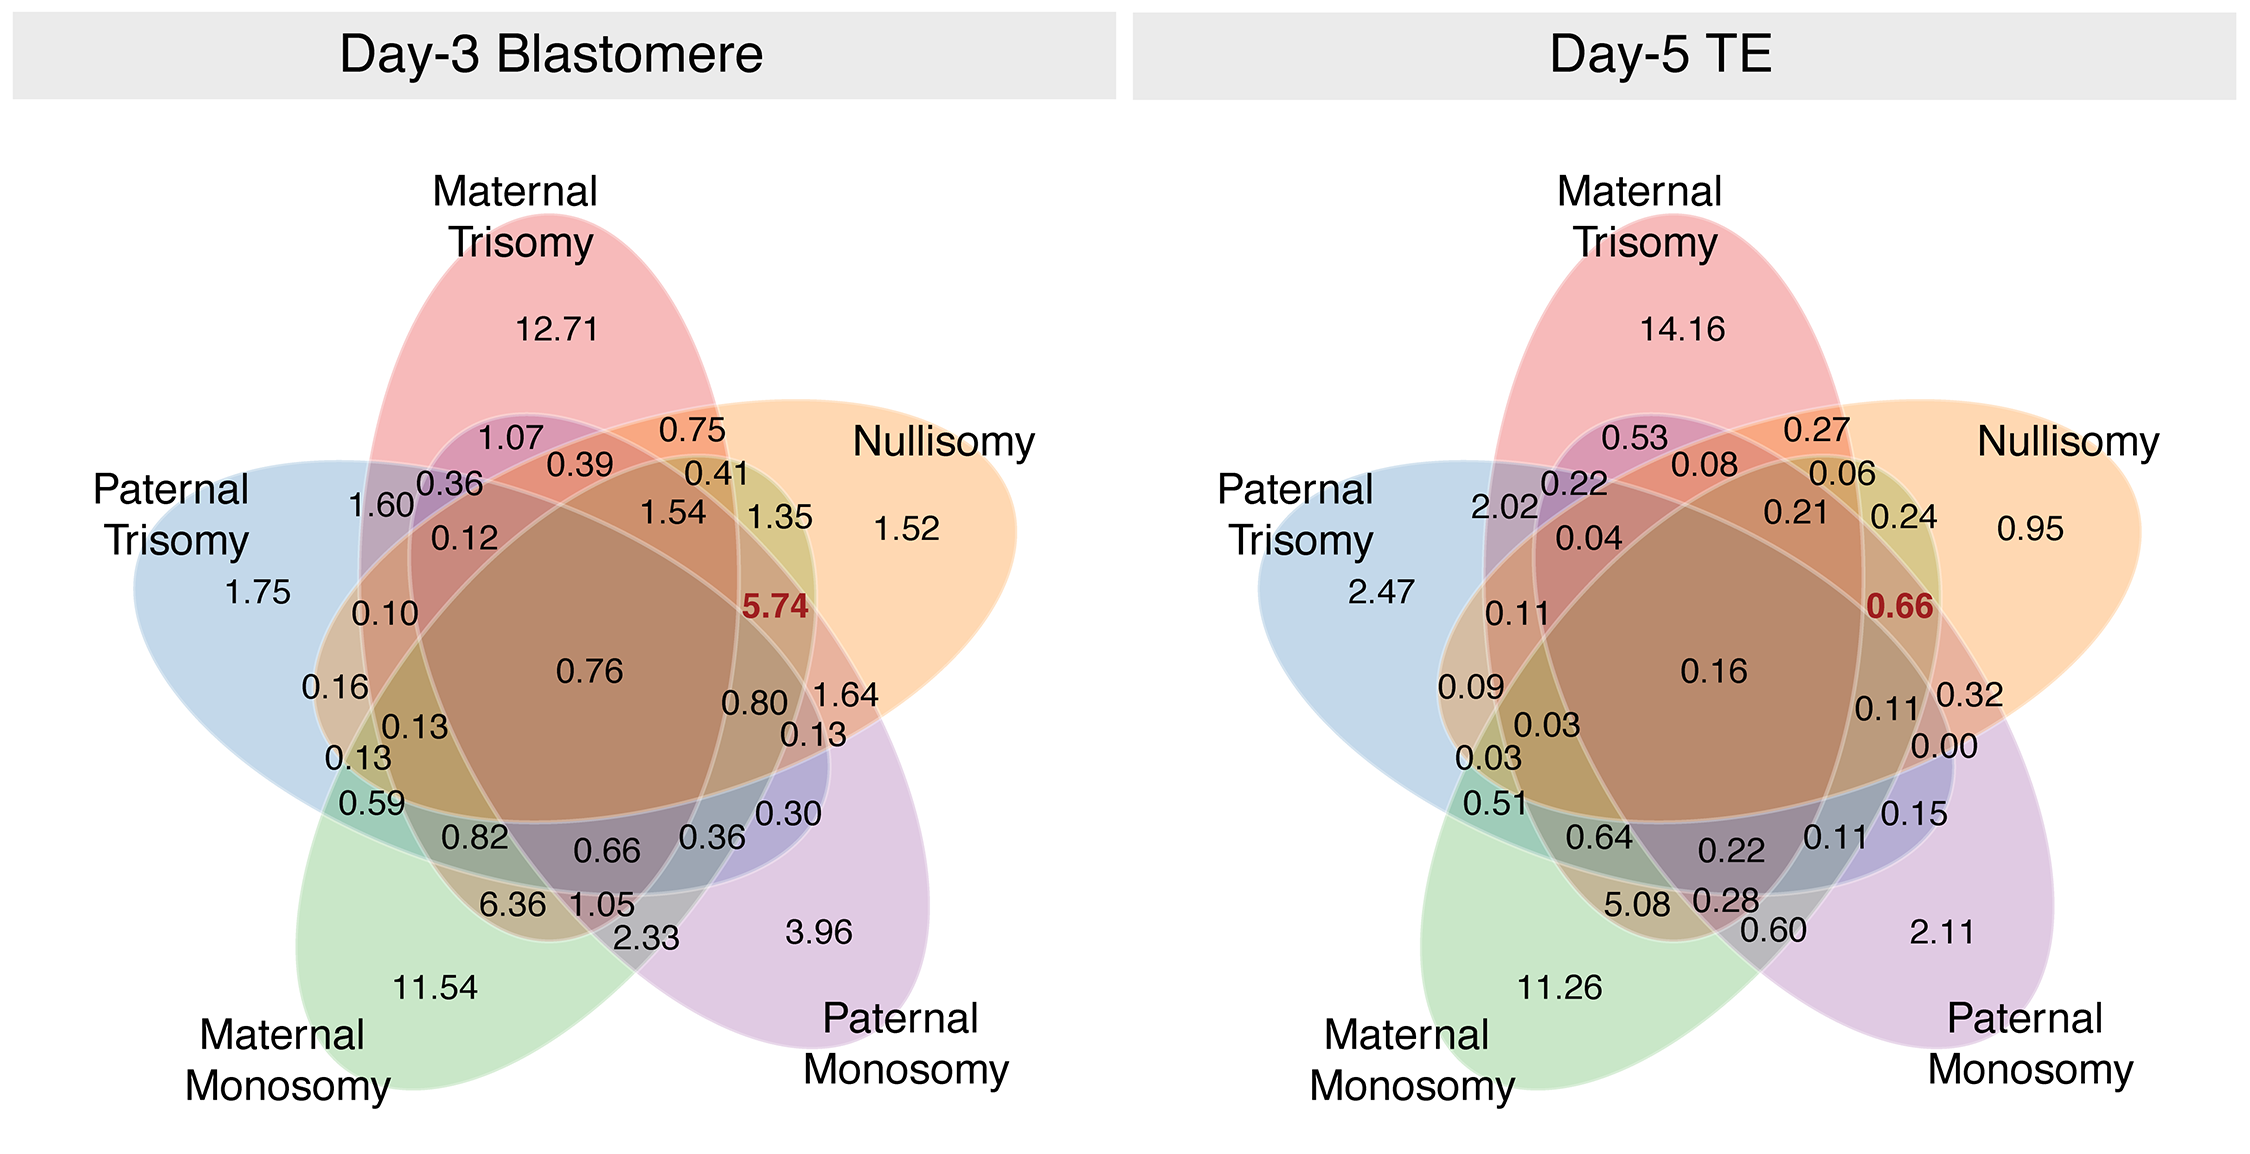 Venn diagram demonstrating that multiple forms of aneuploidy commonly co-occur within individual day-3 blastomeres.